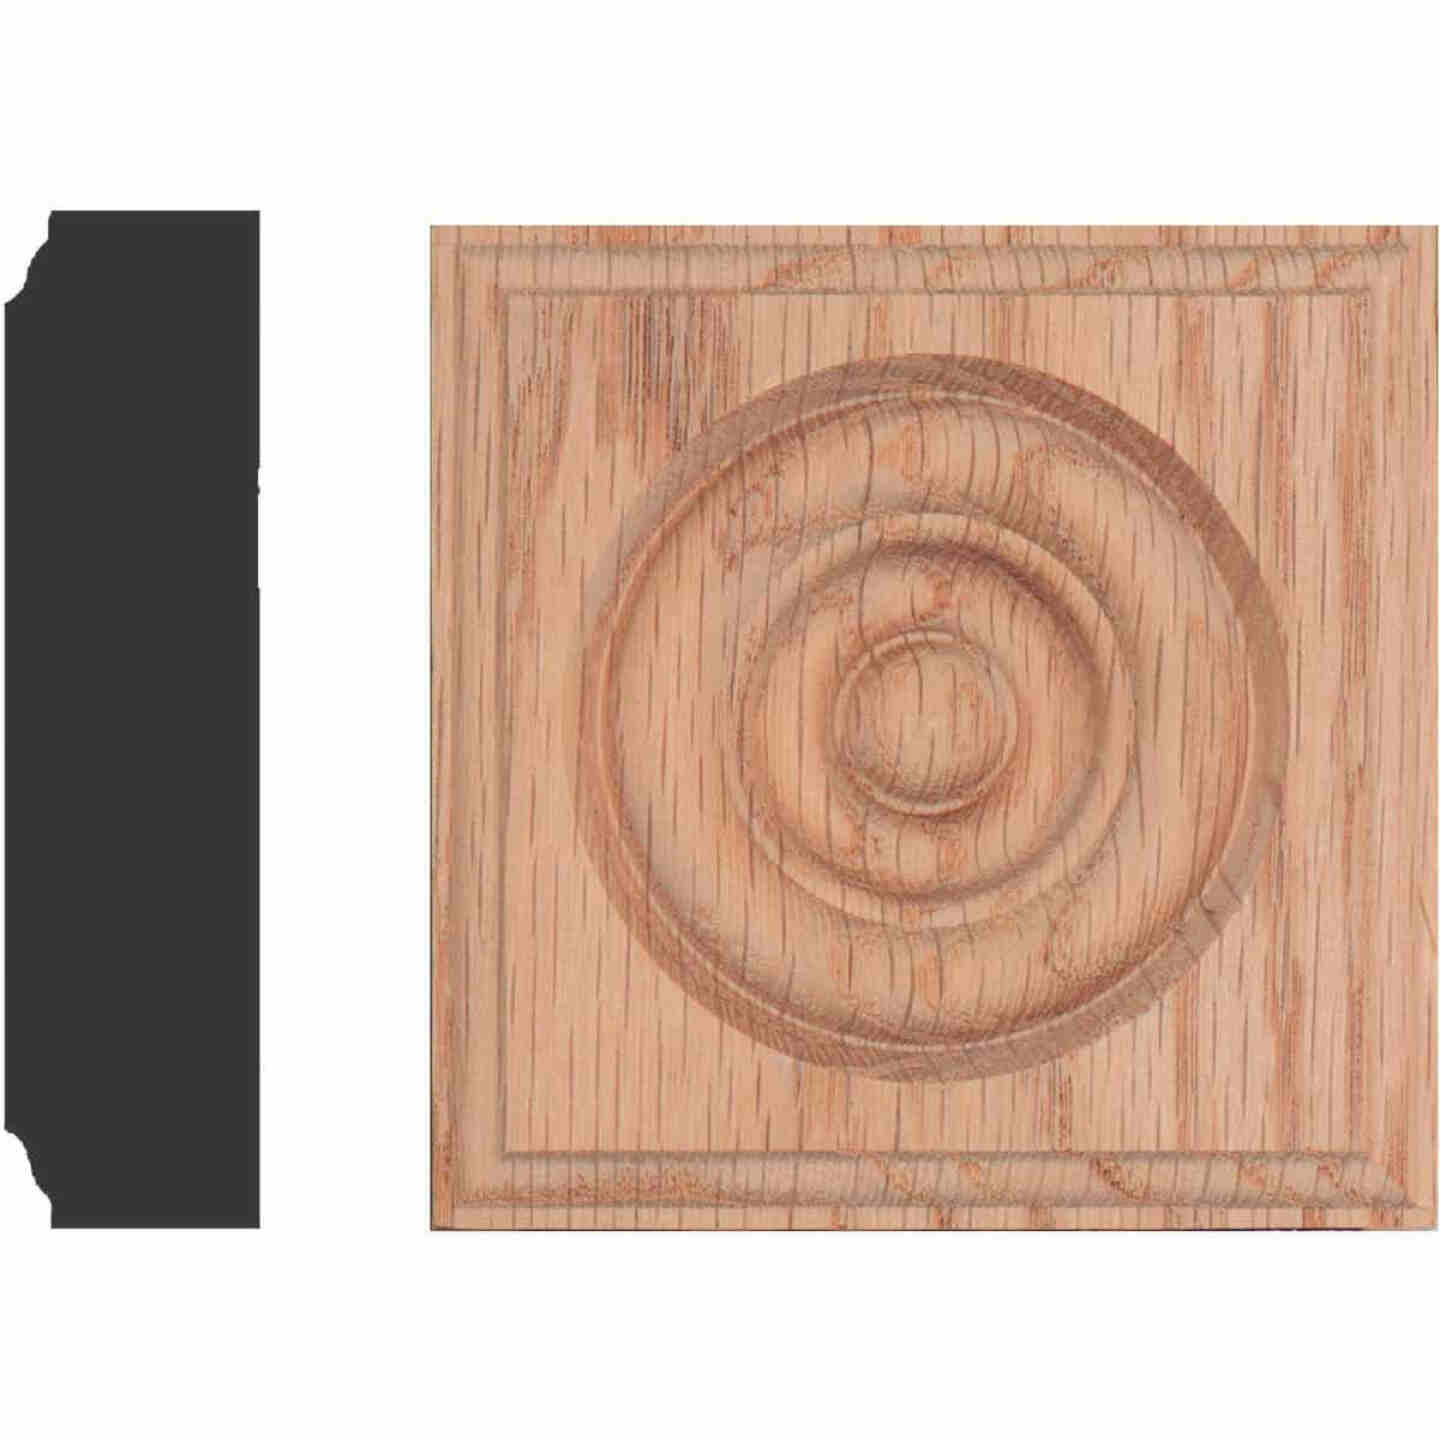 House of Fara 7/8 In. x 3-1/2 In. Unfinished Red Oak Rosette Block Image 1